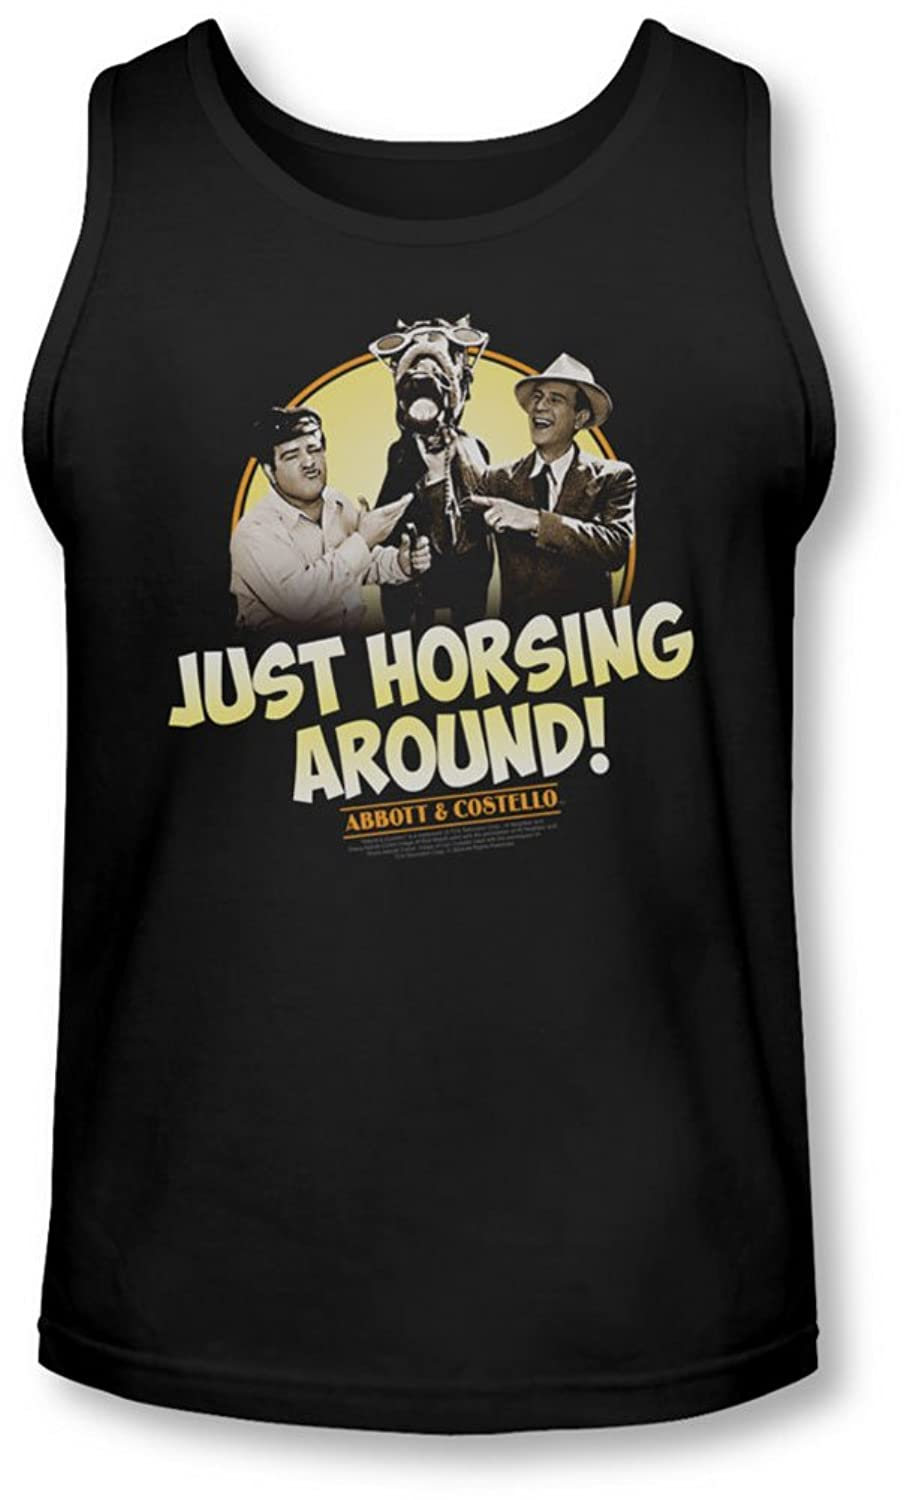 Abbott & Costello - Mens Horsing Around Tank-Top